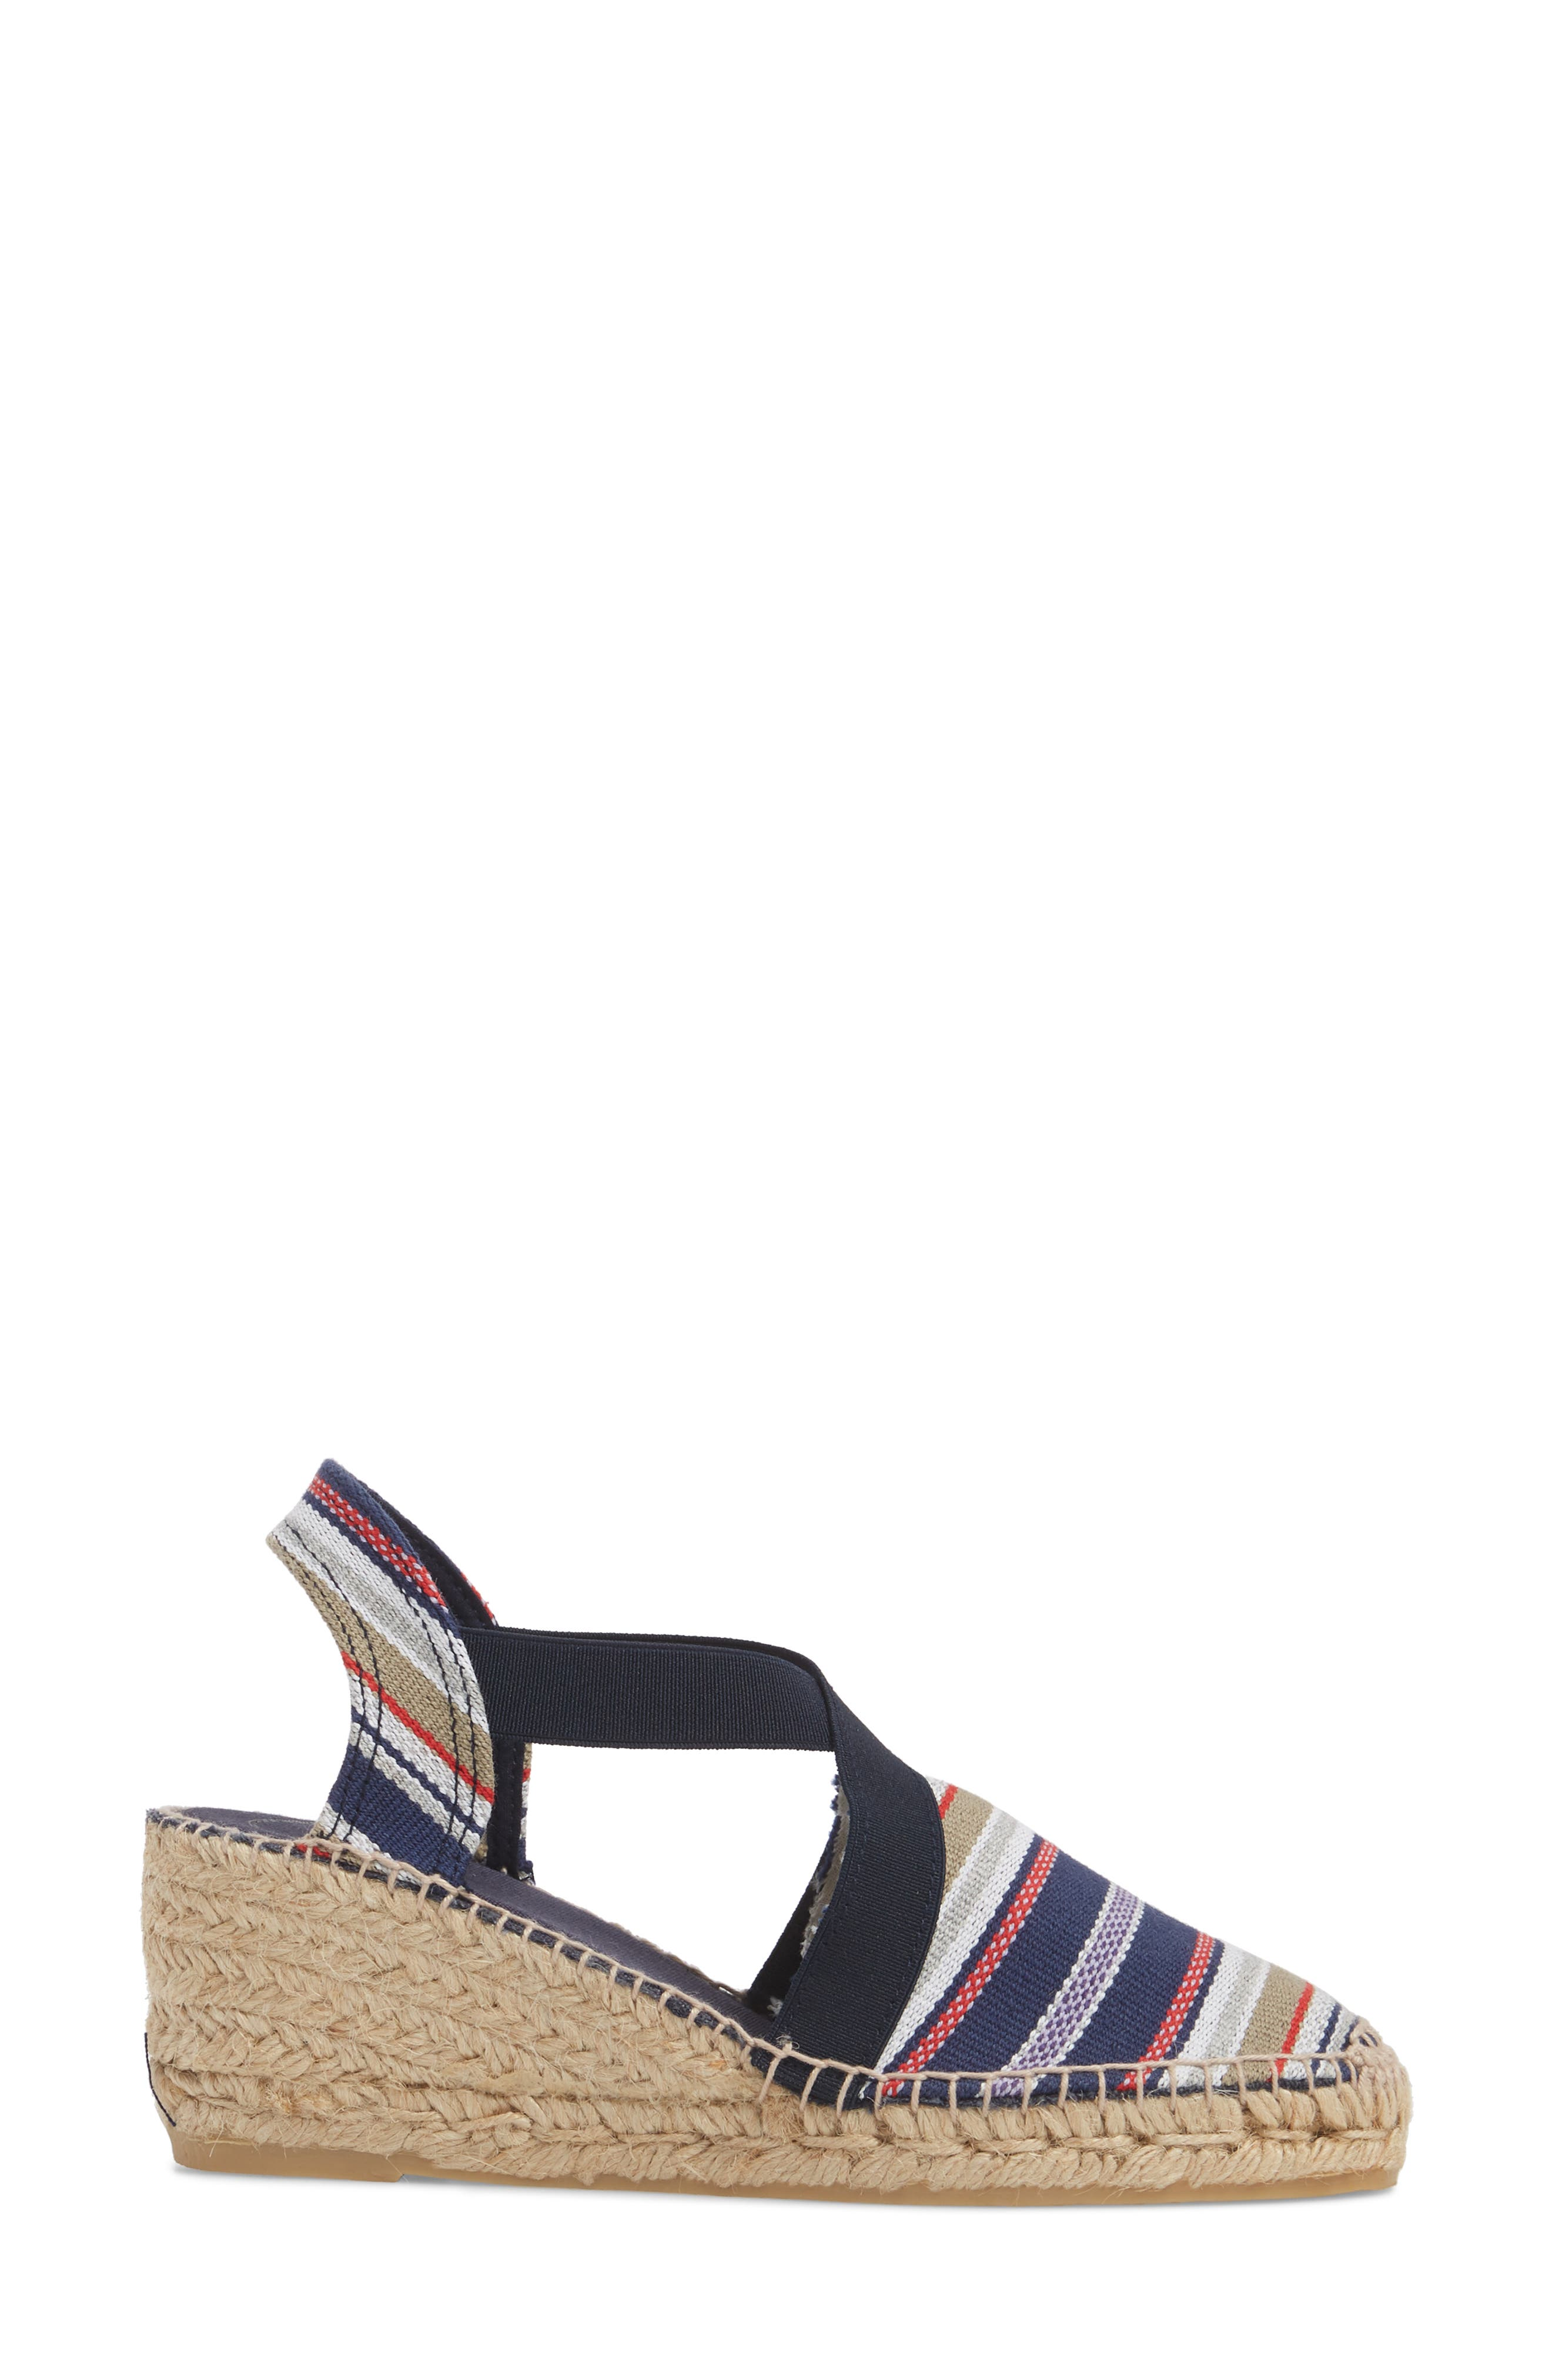 'Tarbes' Espadrille Wedge Sandal,                             Alternate thumbnail 3, color,                             Navy Fabric